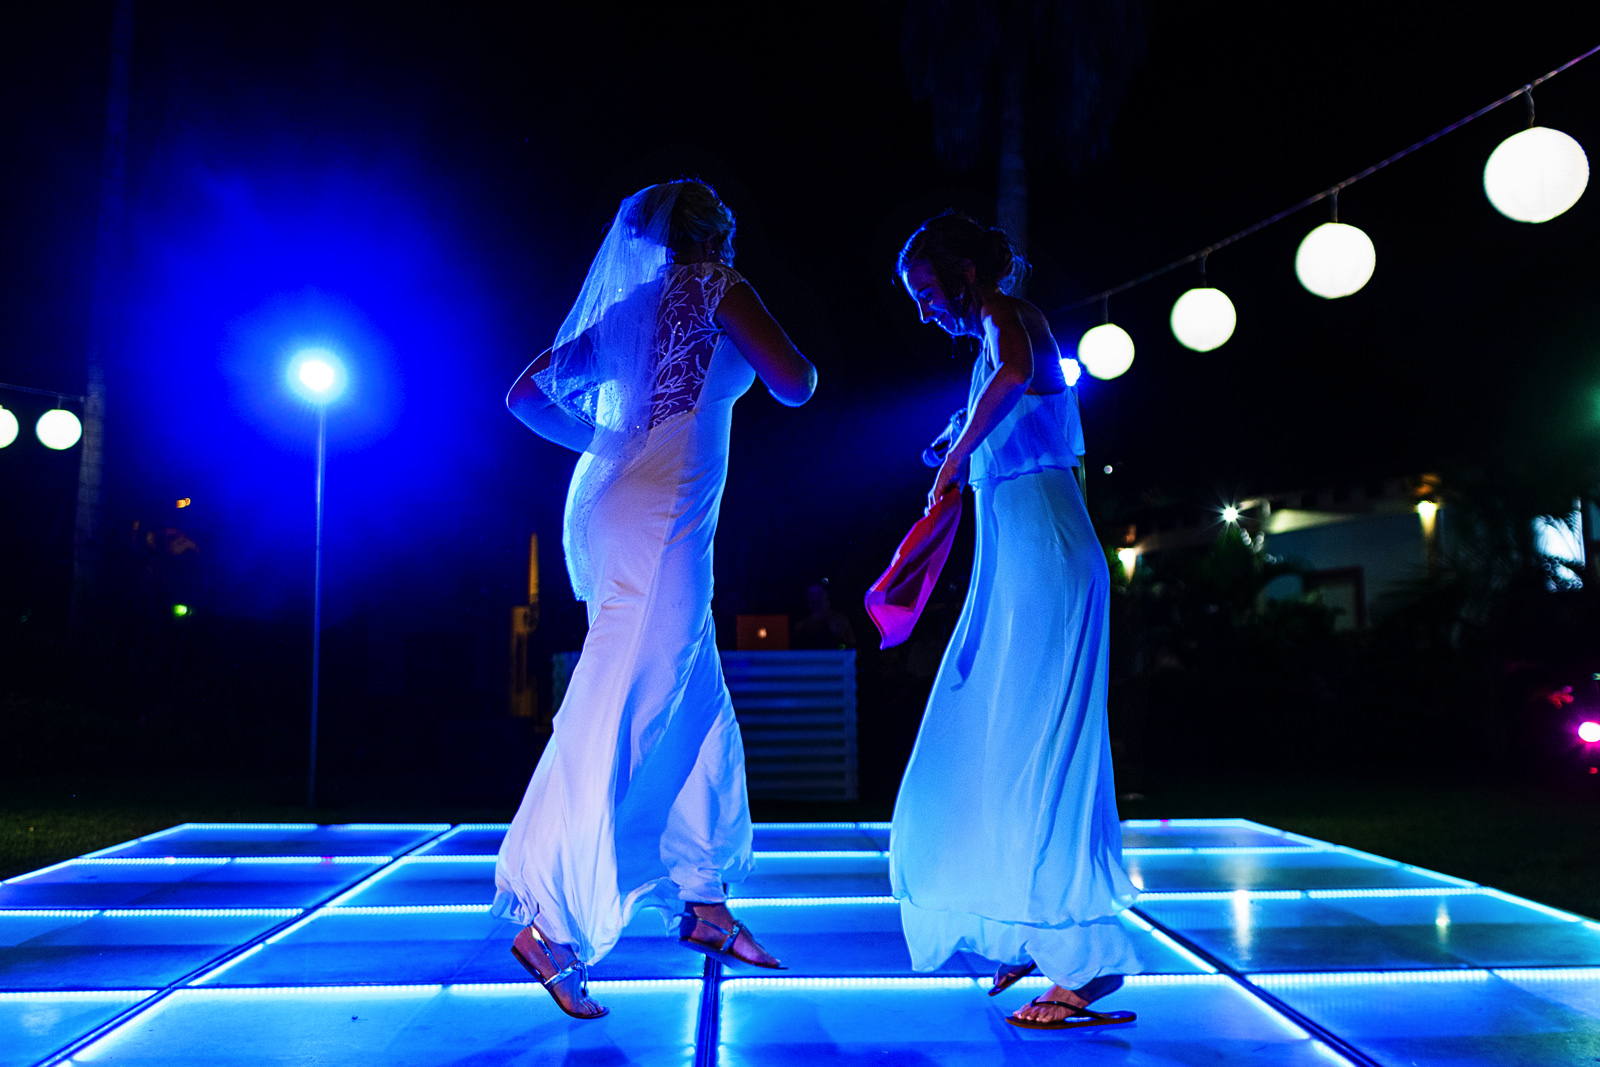 Bride and maid of honor dancing in the dance floor as part of the speech during destination wedding reception